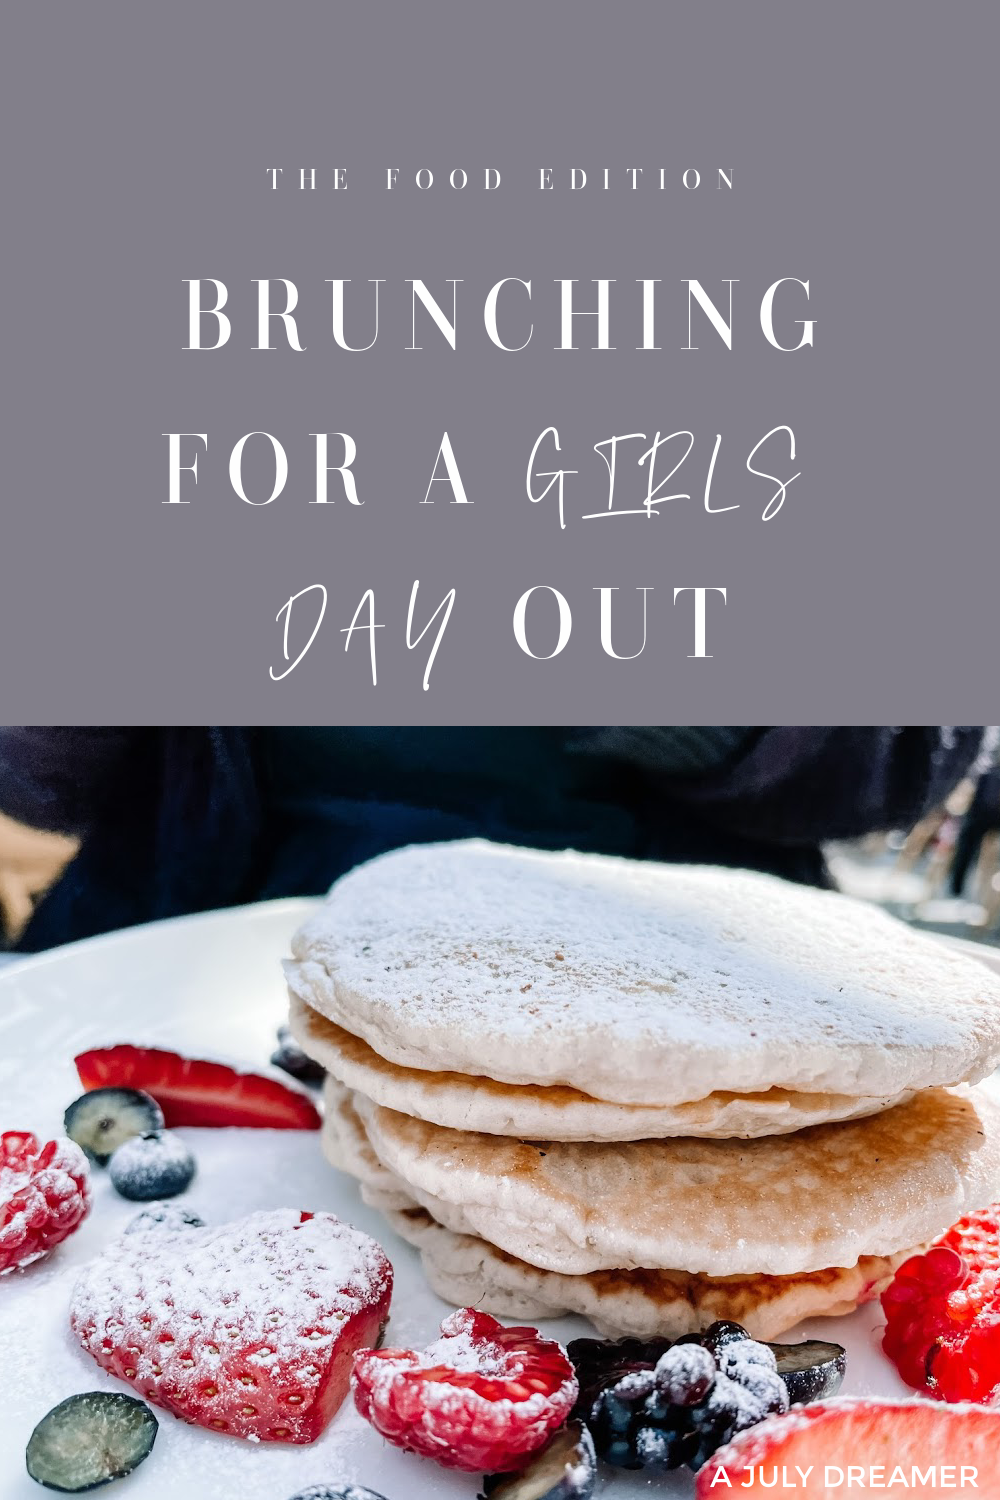 With the hospitality industry open and back with a vengeance, now is the perfect time for brunching for a girls day out. I can't not remember the last time I went out brunching with my girl friends or just eating out at a restaurant.